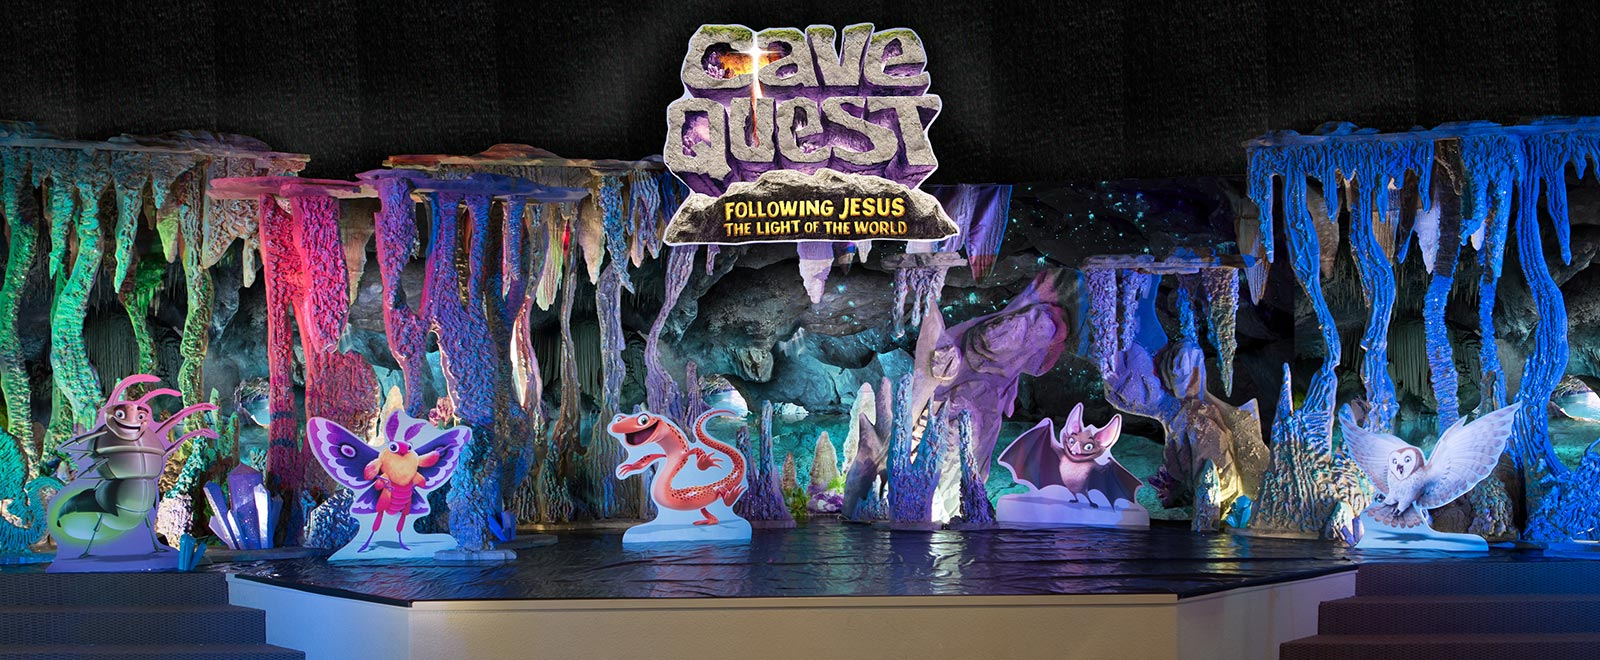 VBS Cave Quest 8/8 -8/12/2016